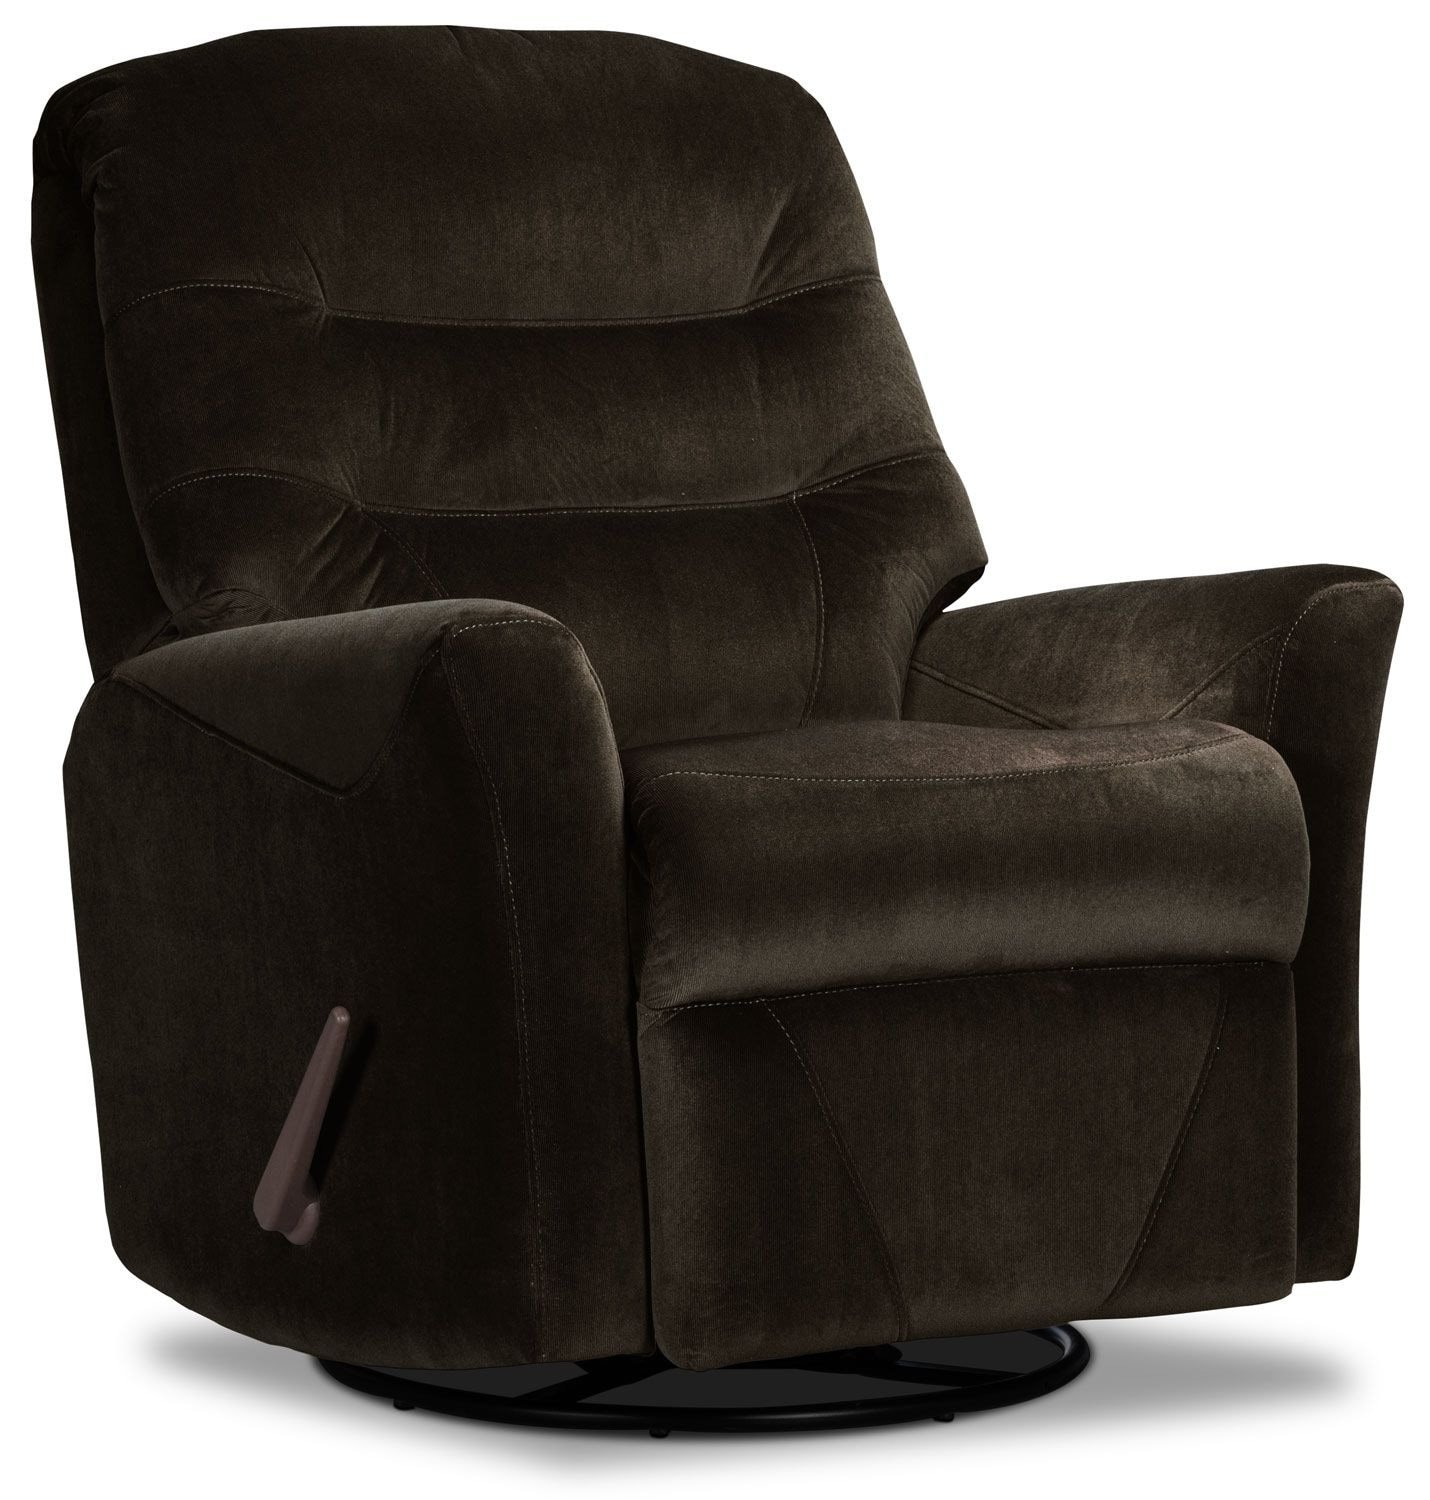 Designed2B Recliner 4560 Microsuede Swivel Glider Recliner - Chocolate